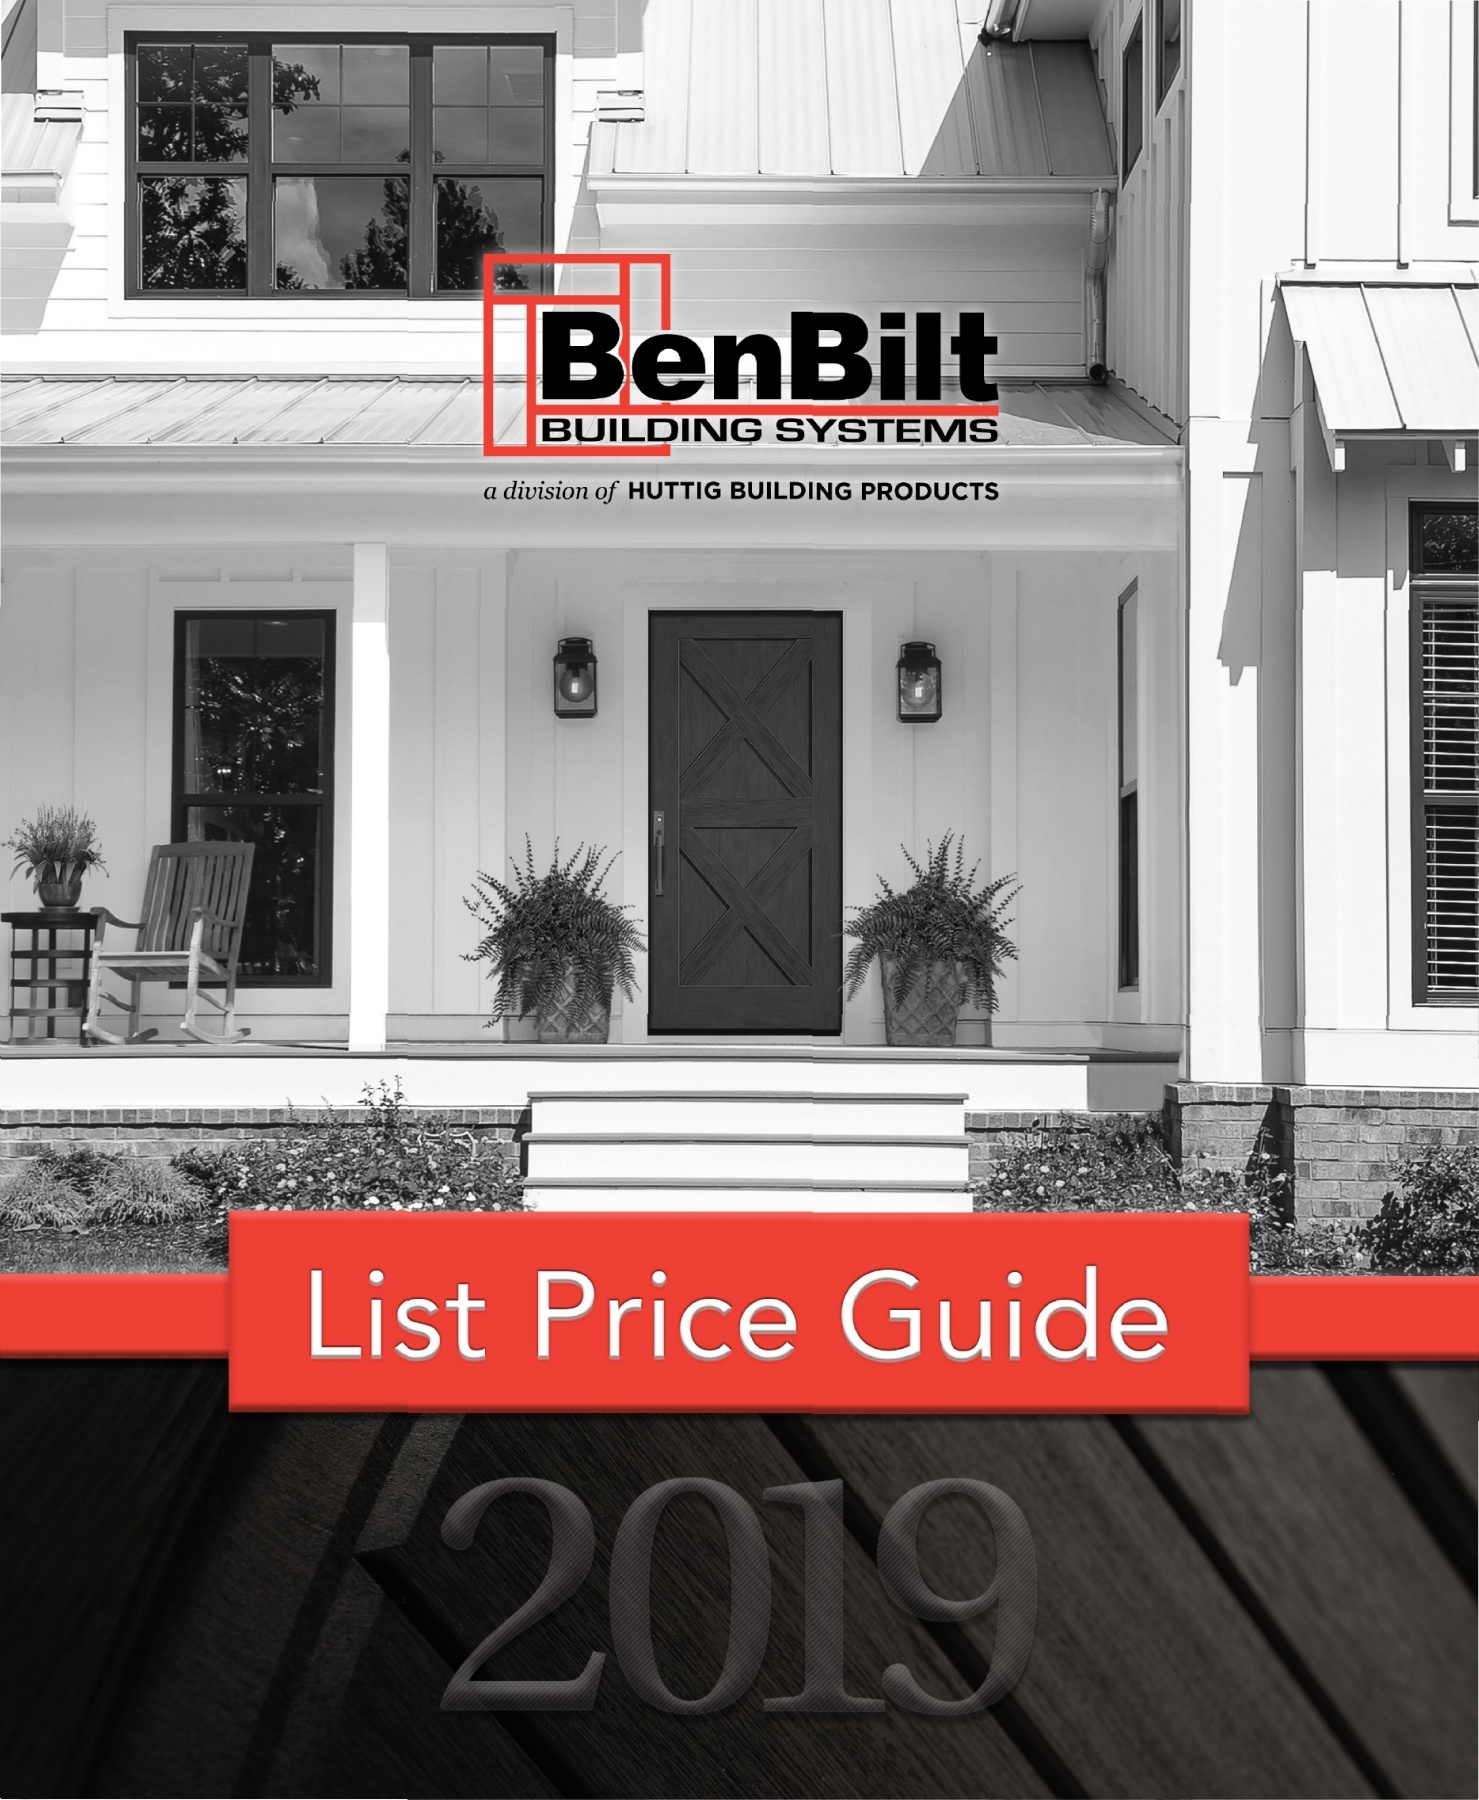 2019 List Price Guide